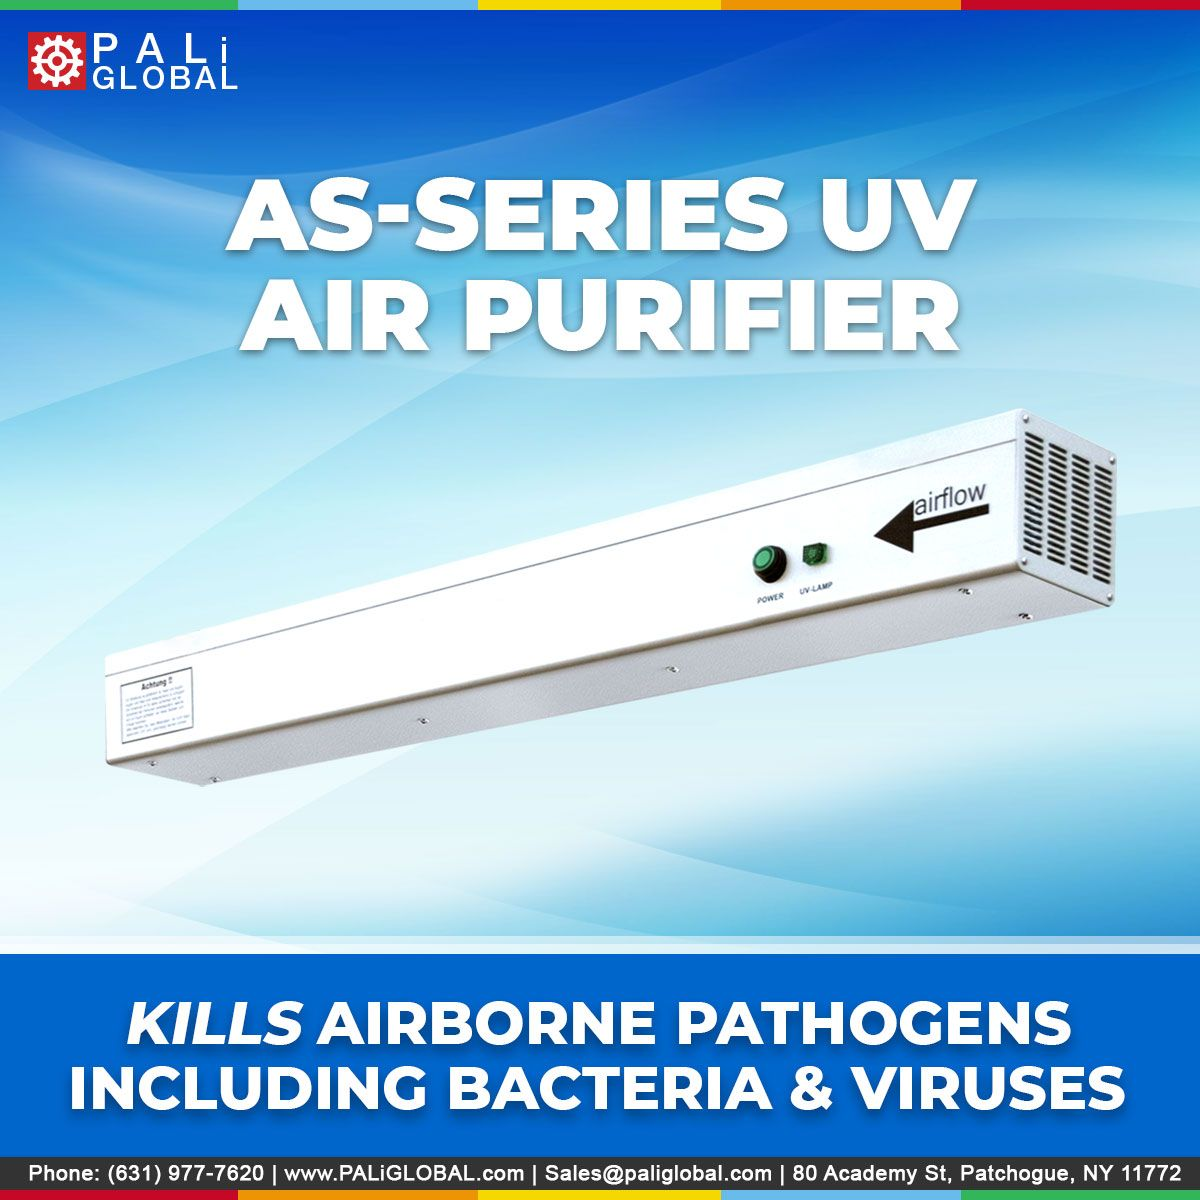 Kill Airborne Pathogens Including Bacterias and Viruses